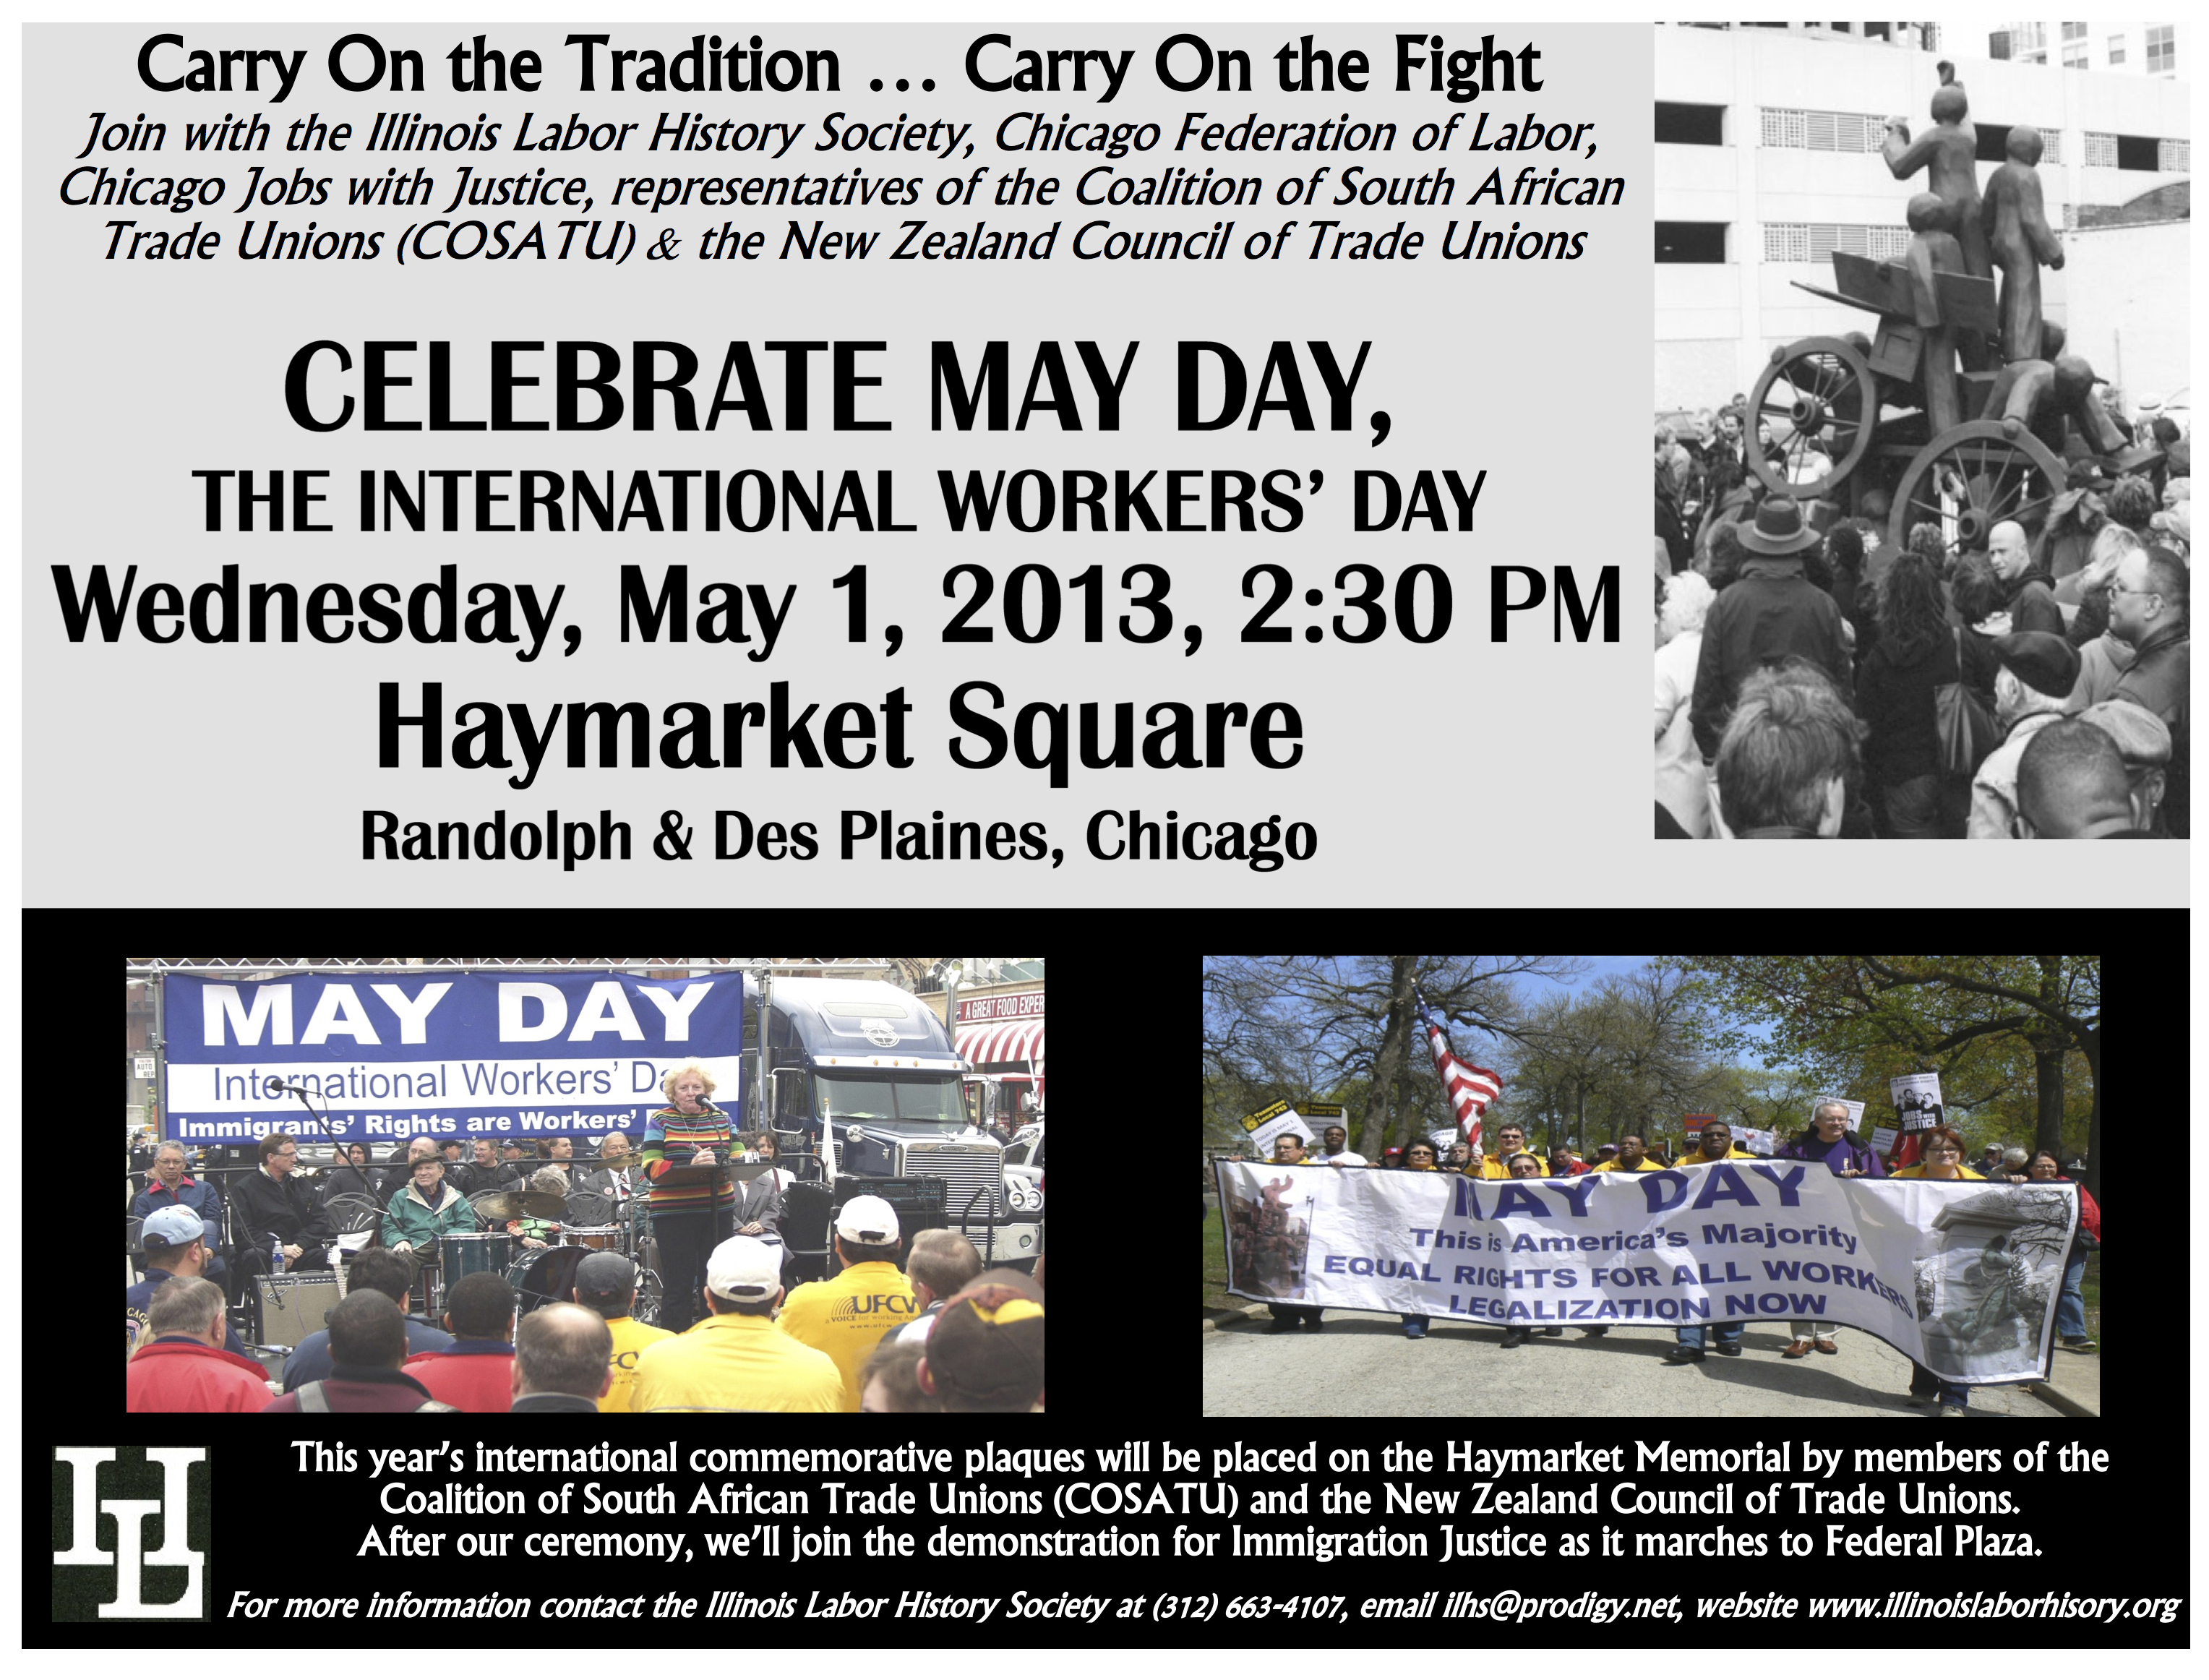 May Day in Chicago